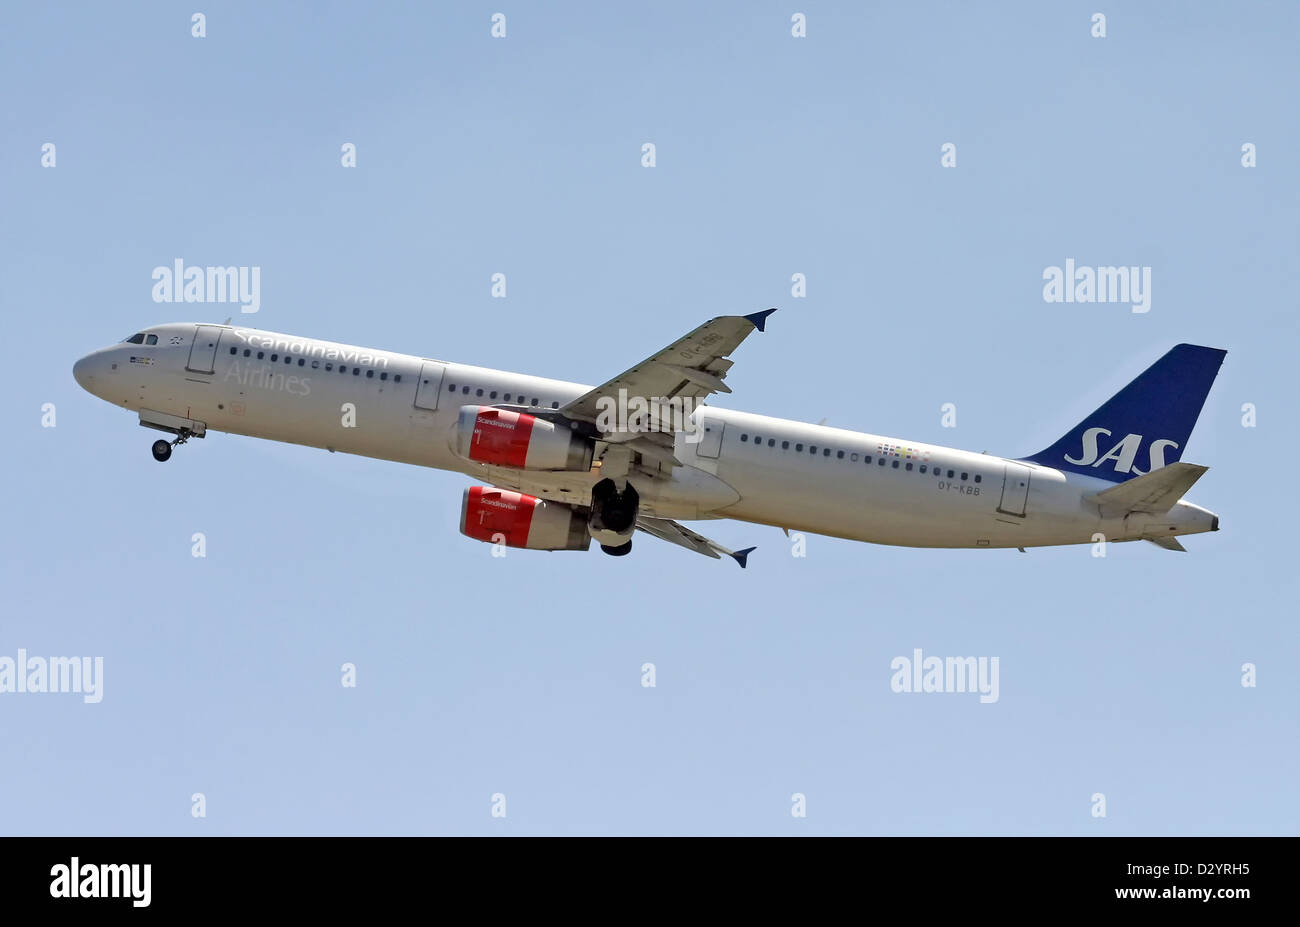 SAS - Scandinavian Airlines, Airbus A321 - Stock Image